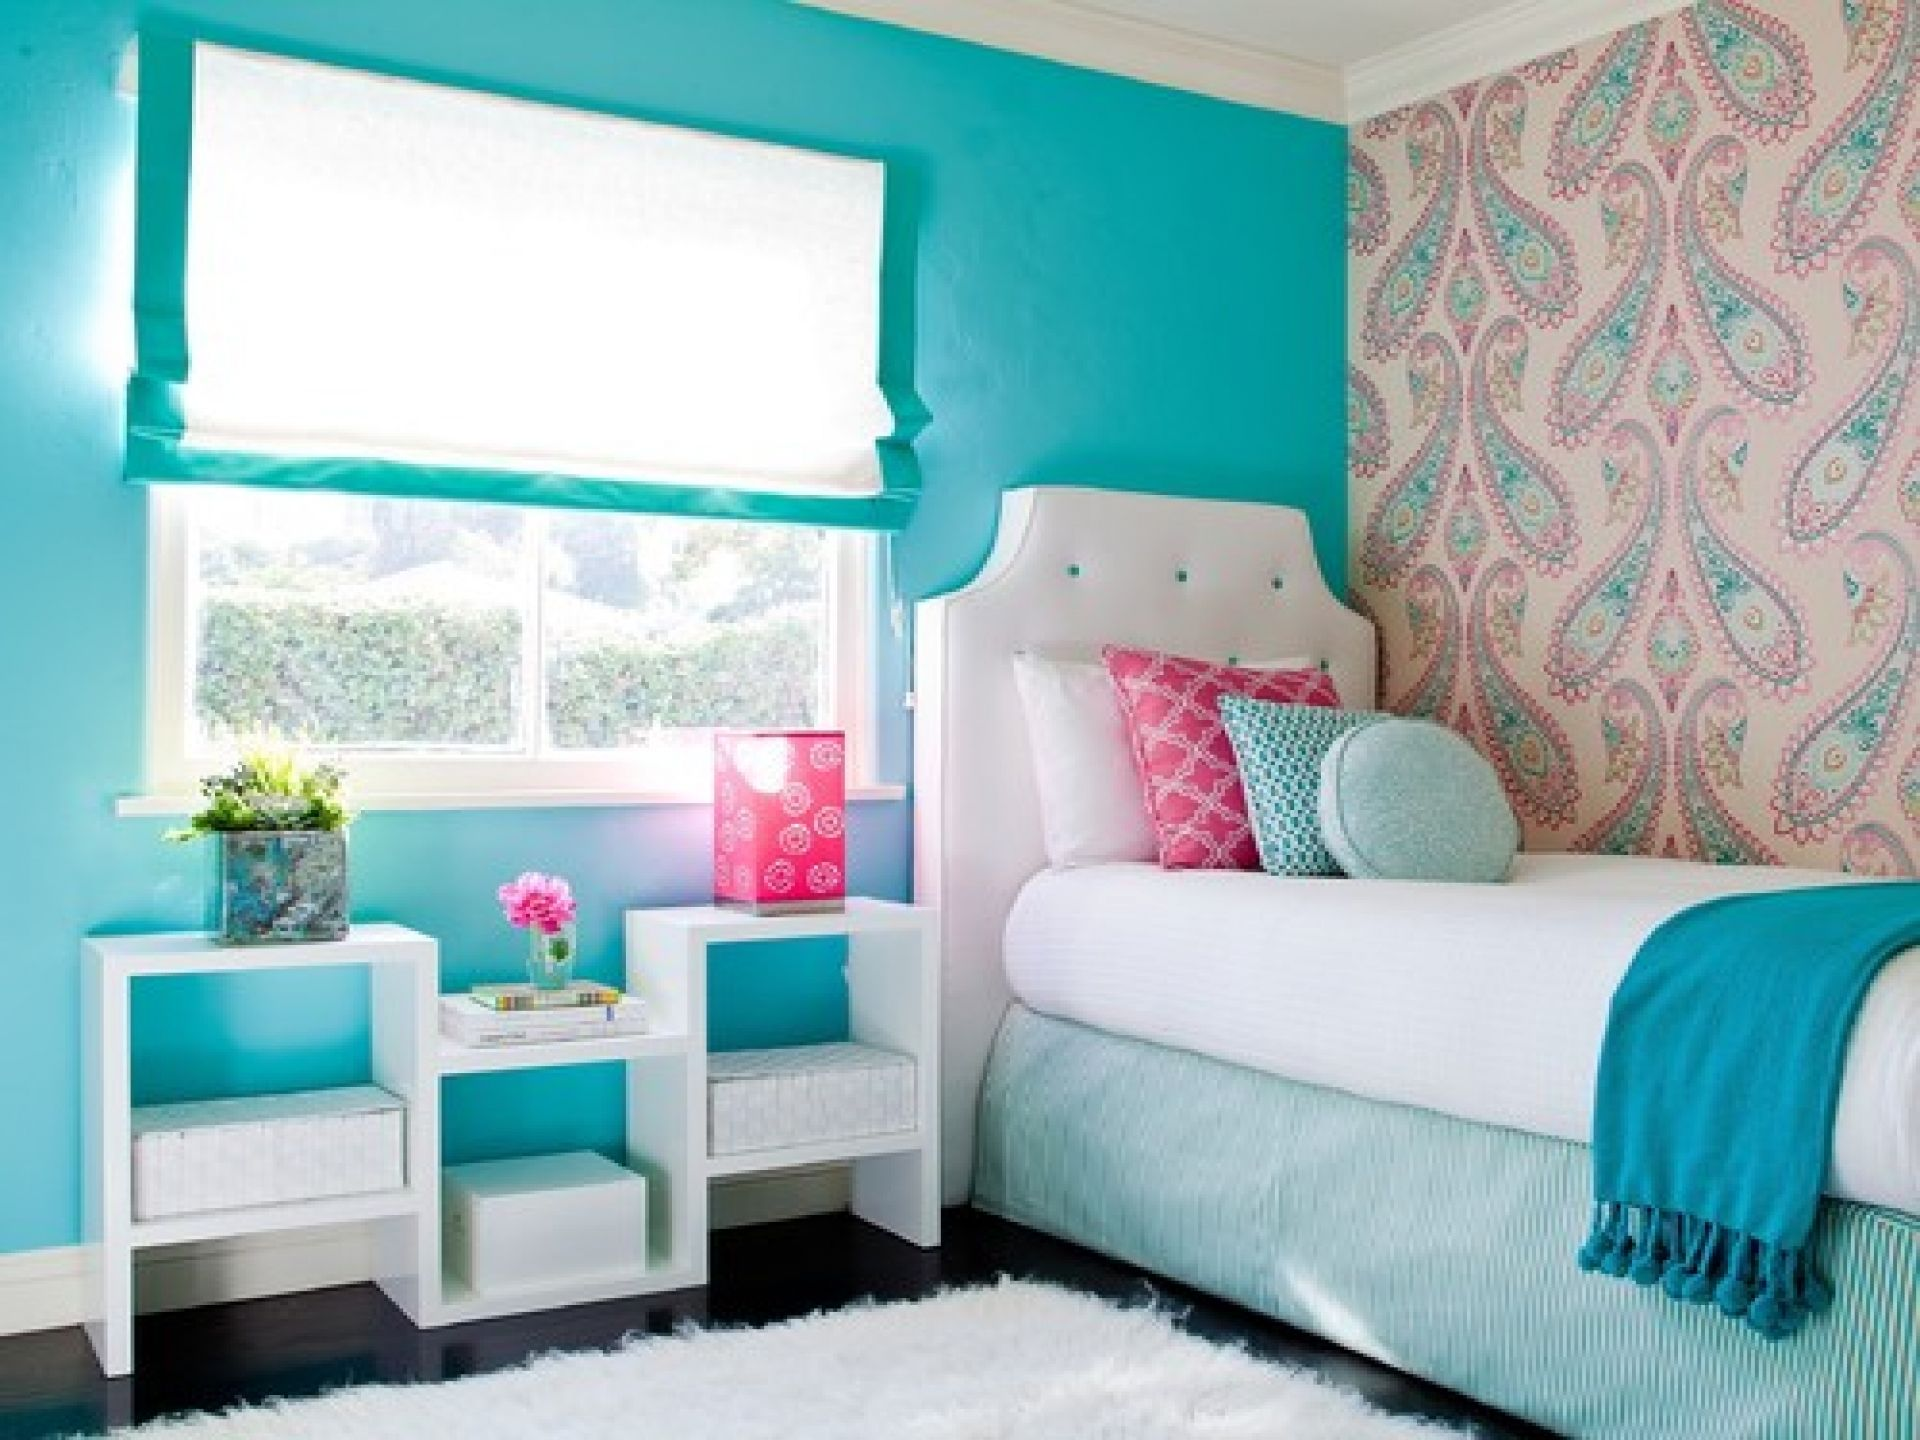 30 Dream Interior Design Teenage Girls Bedroom Ideas Tween Girl